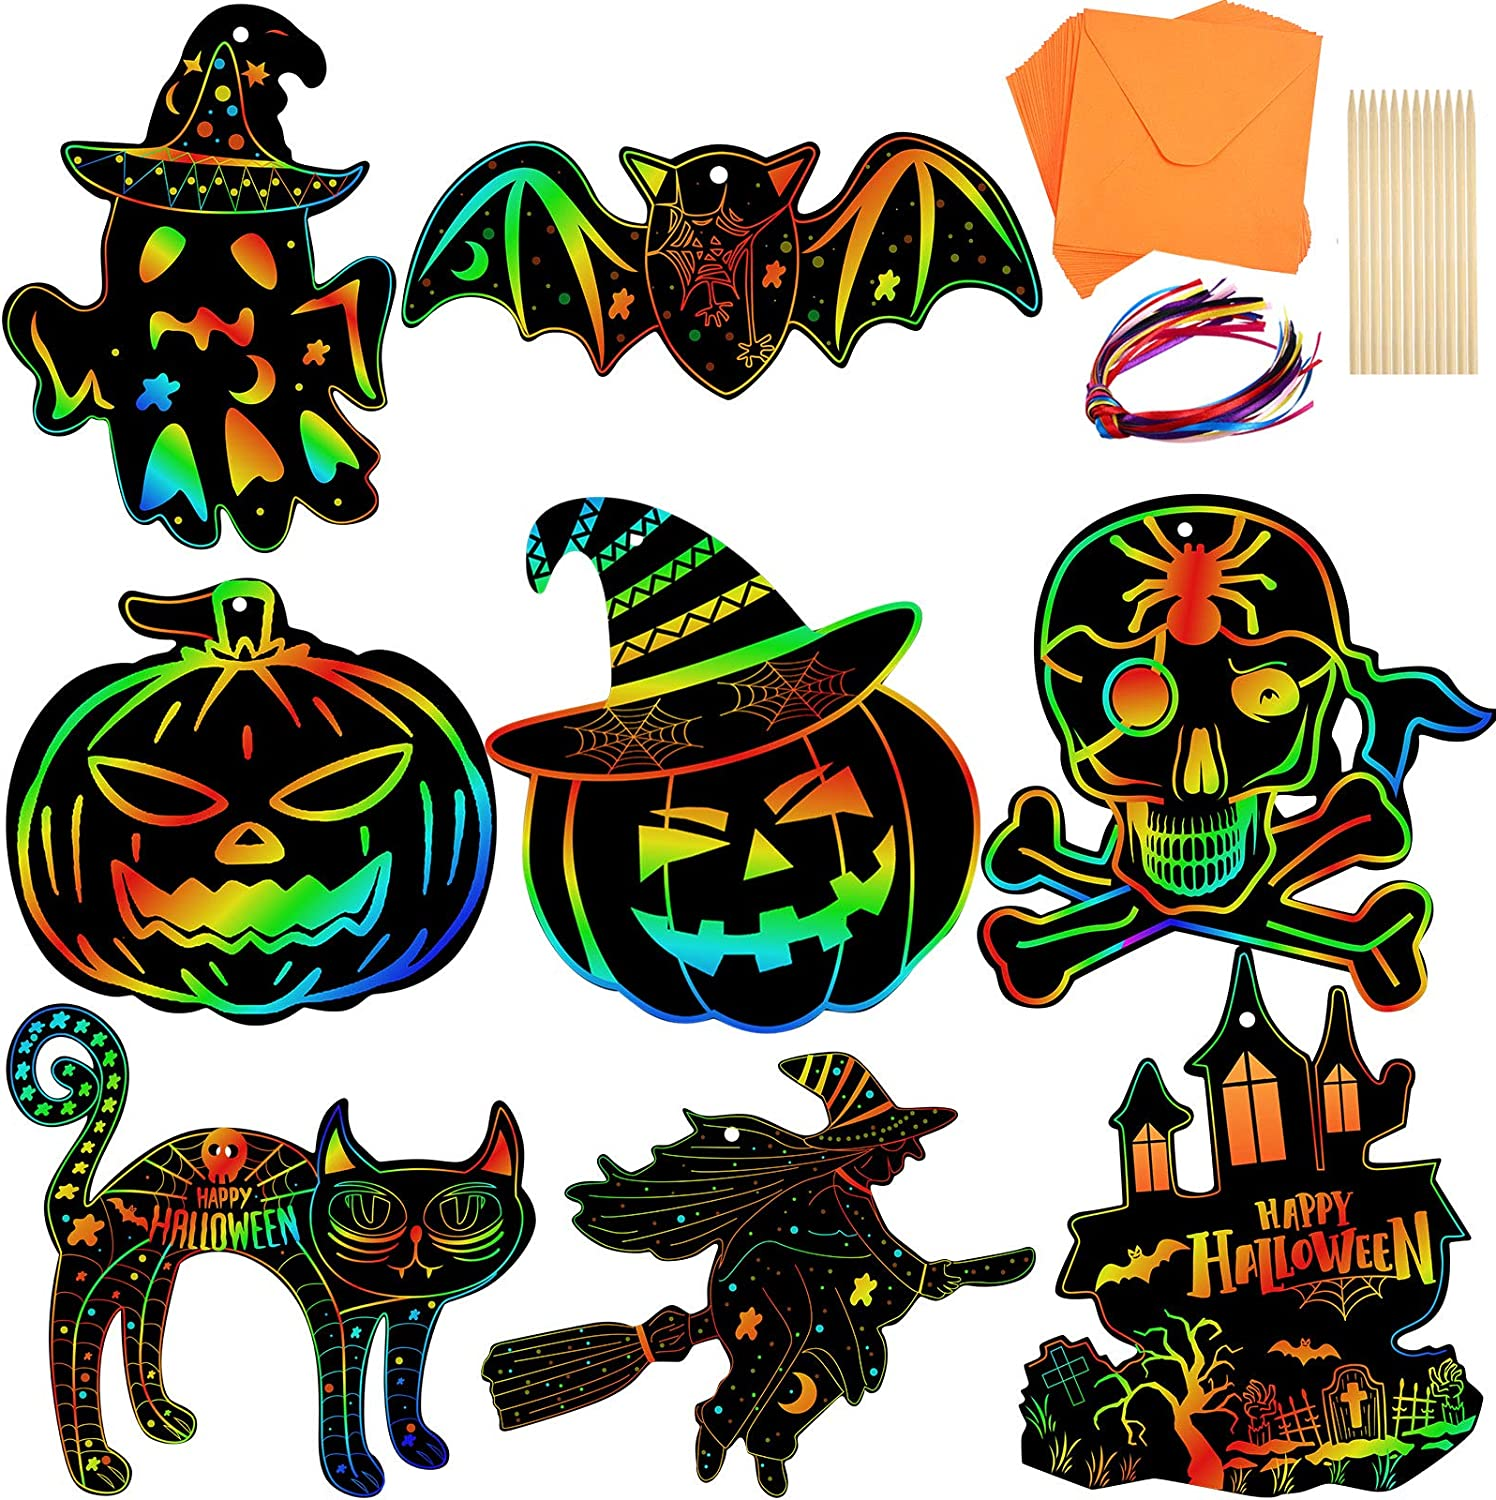 Amazon Com 24 Pieces Halloween Scratch Craft Art Kit Rainbow Colorful Magic Scratch Paper Card Pumpkin Jack Witch Shape With Ribbons Wooden Scratch Tools And Envelopes For Halloween Theme Party Home Decorations Arts